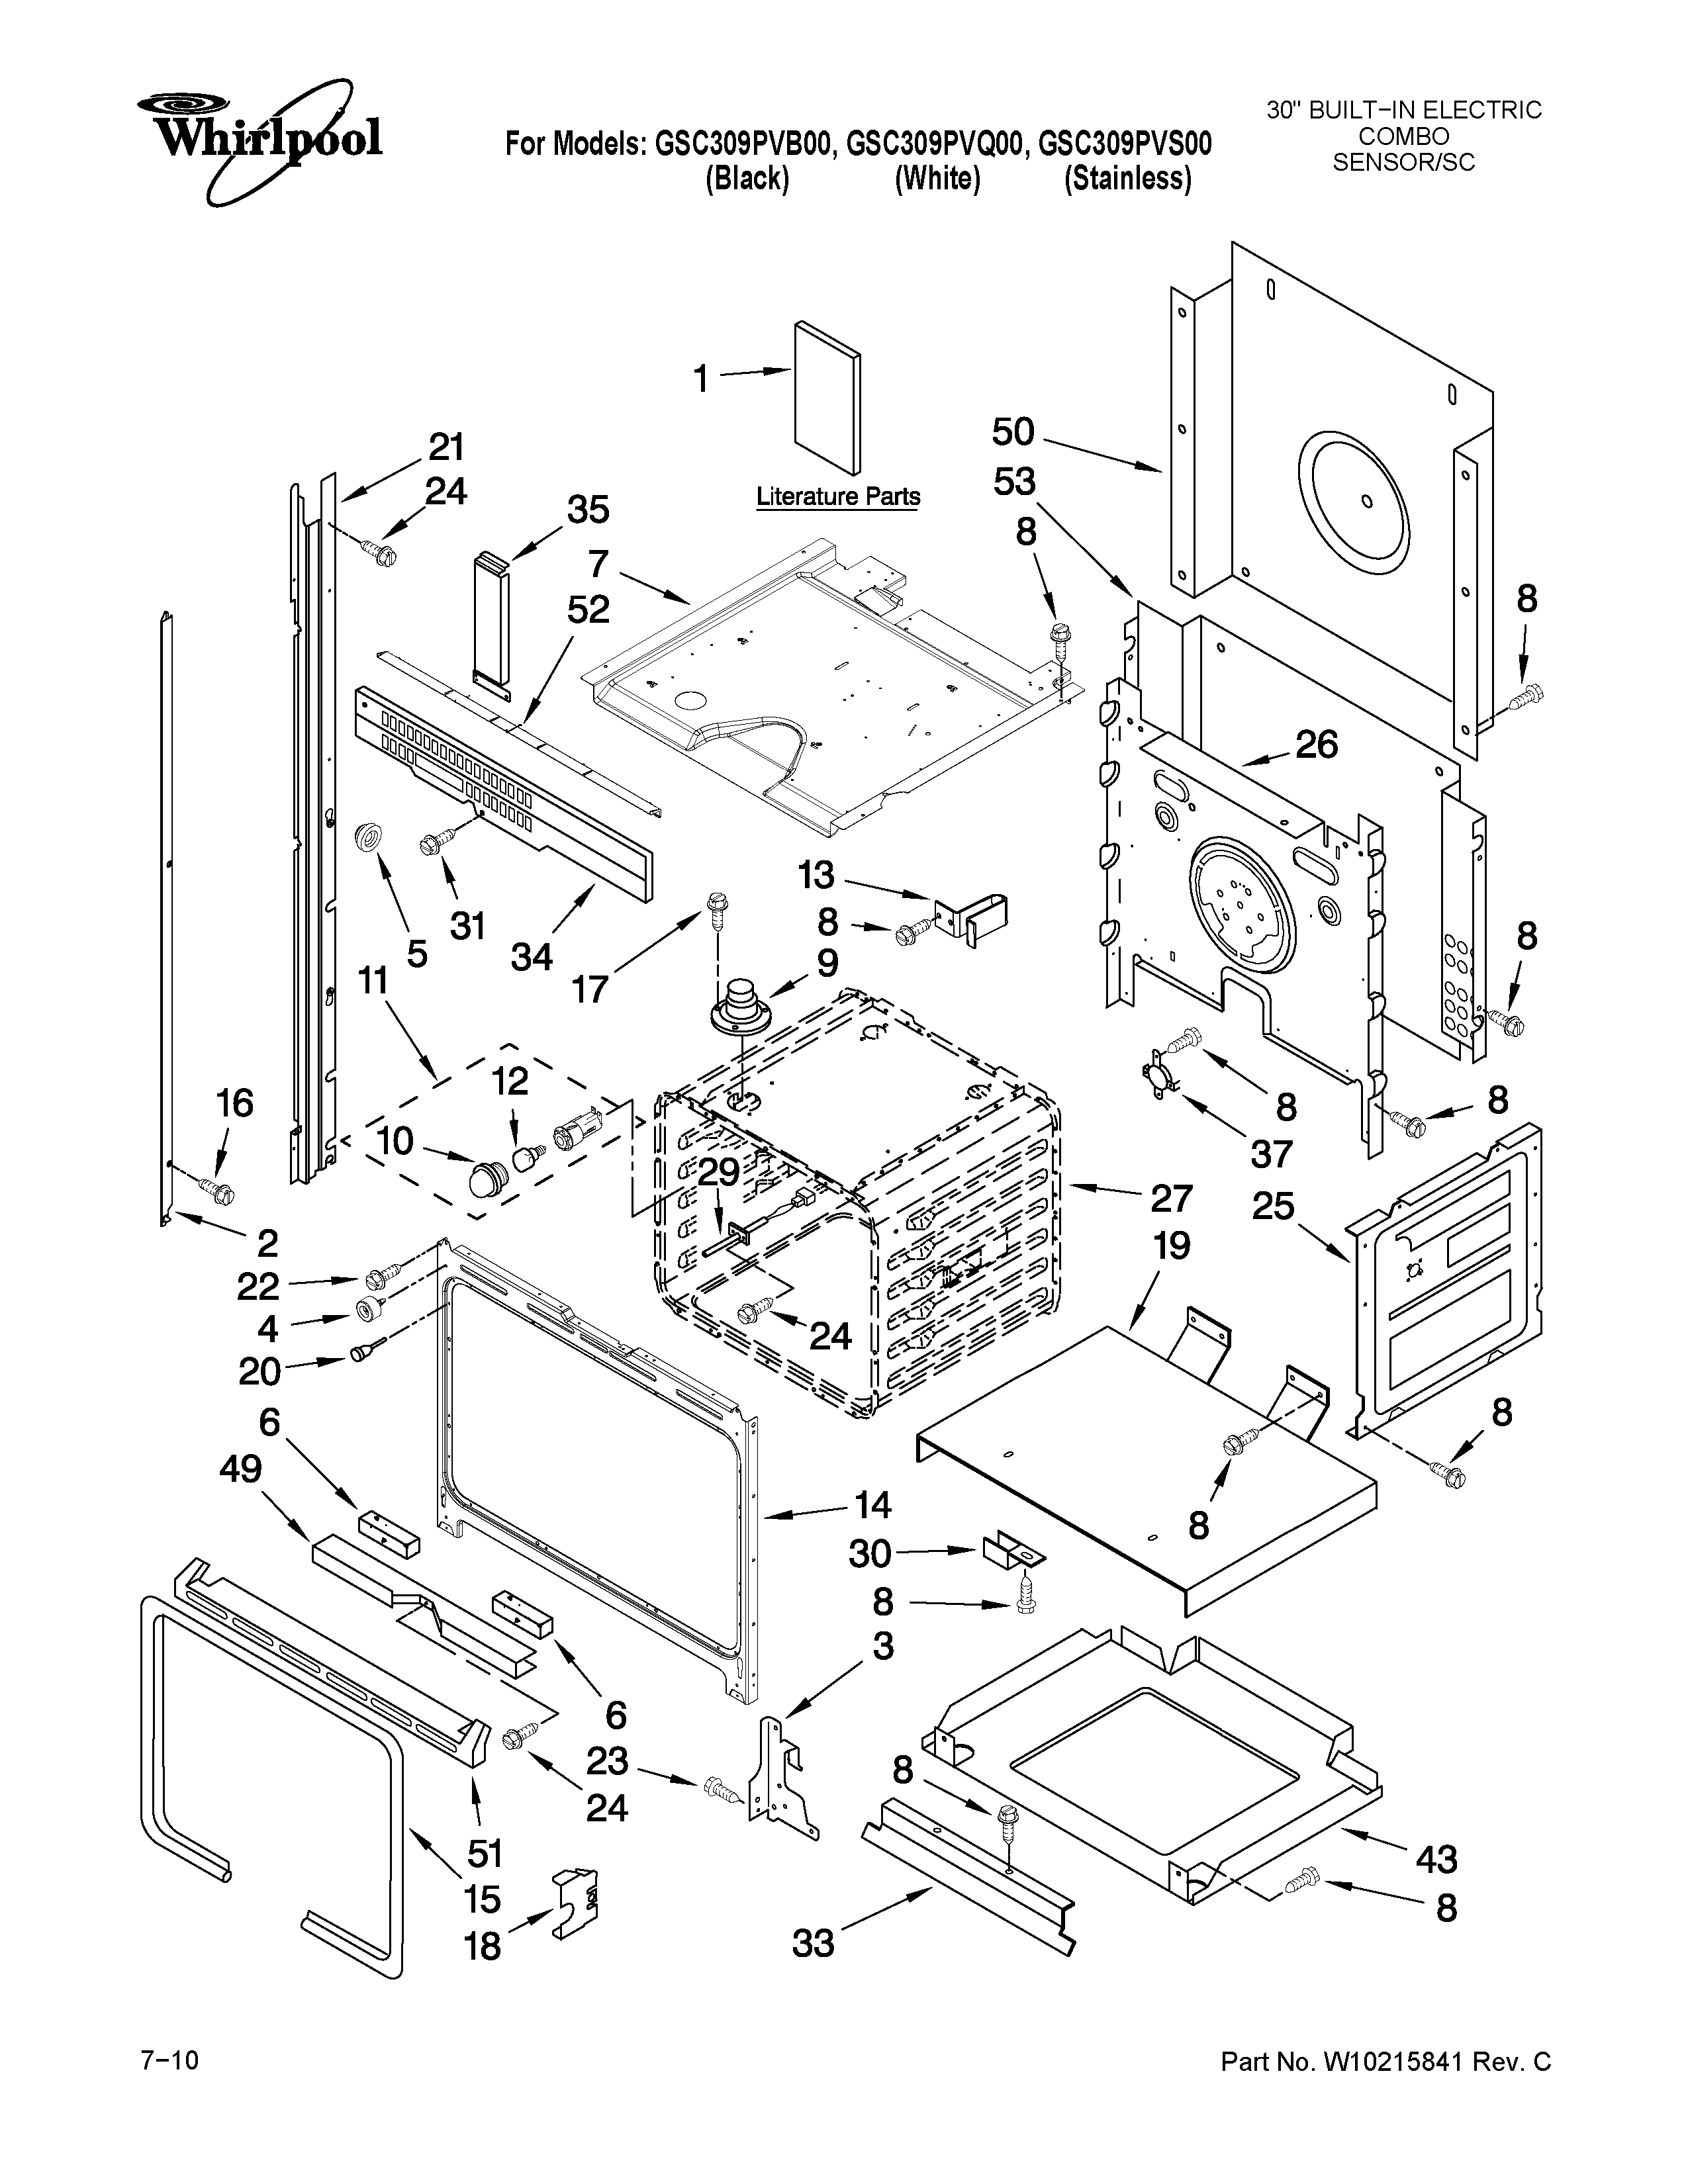 Whirlpool GSC309PVB00 oven parts diagram